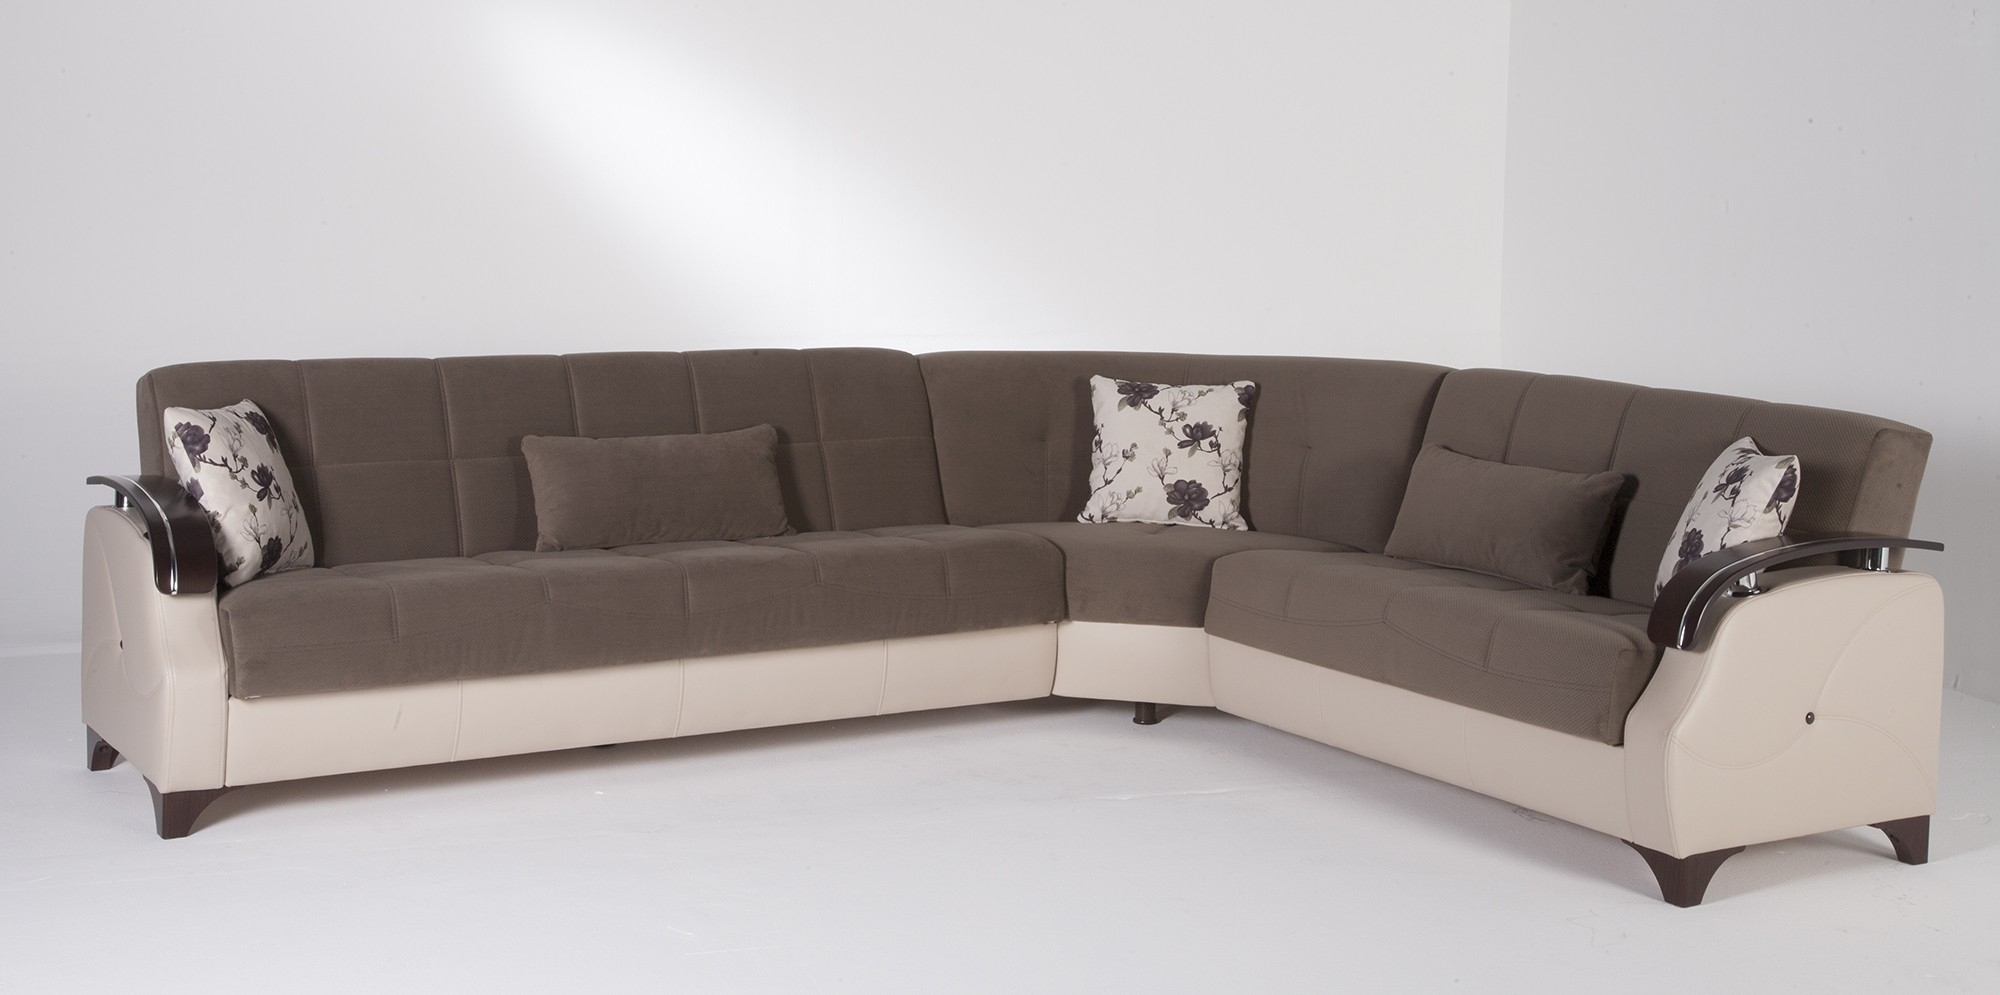 Featured Image of Tuscaloosa Sectional Sofas